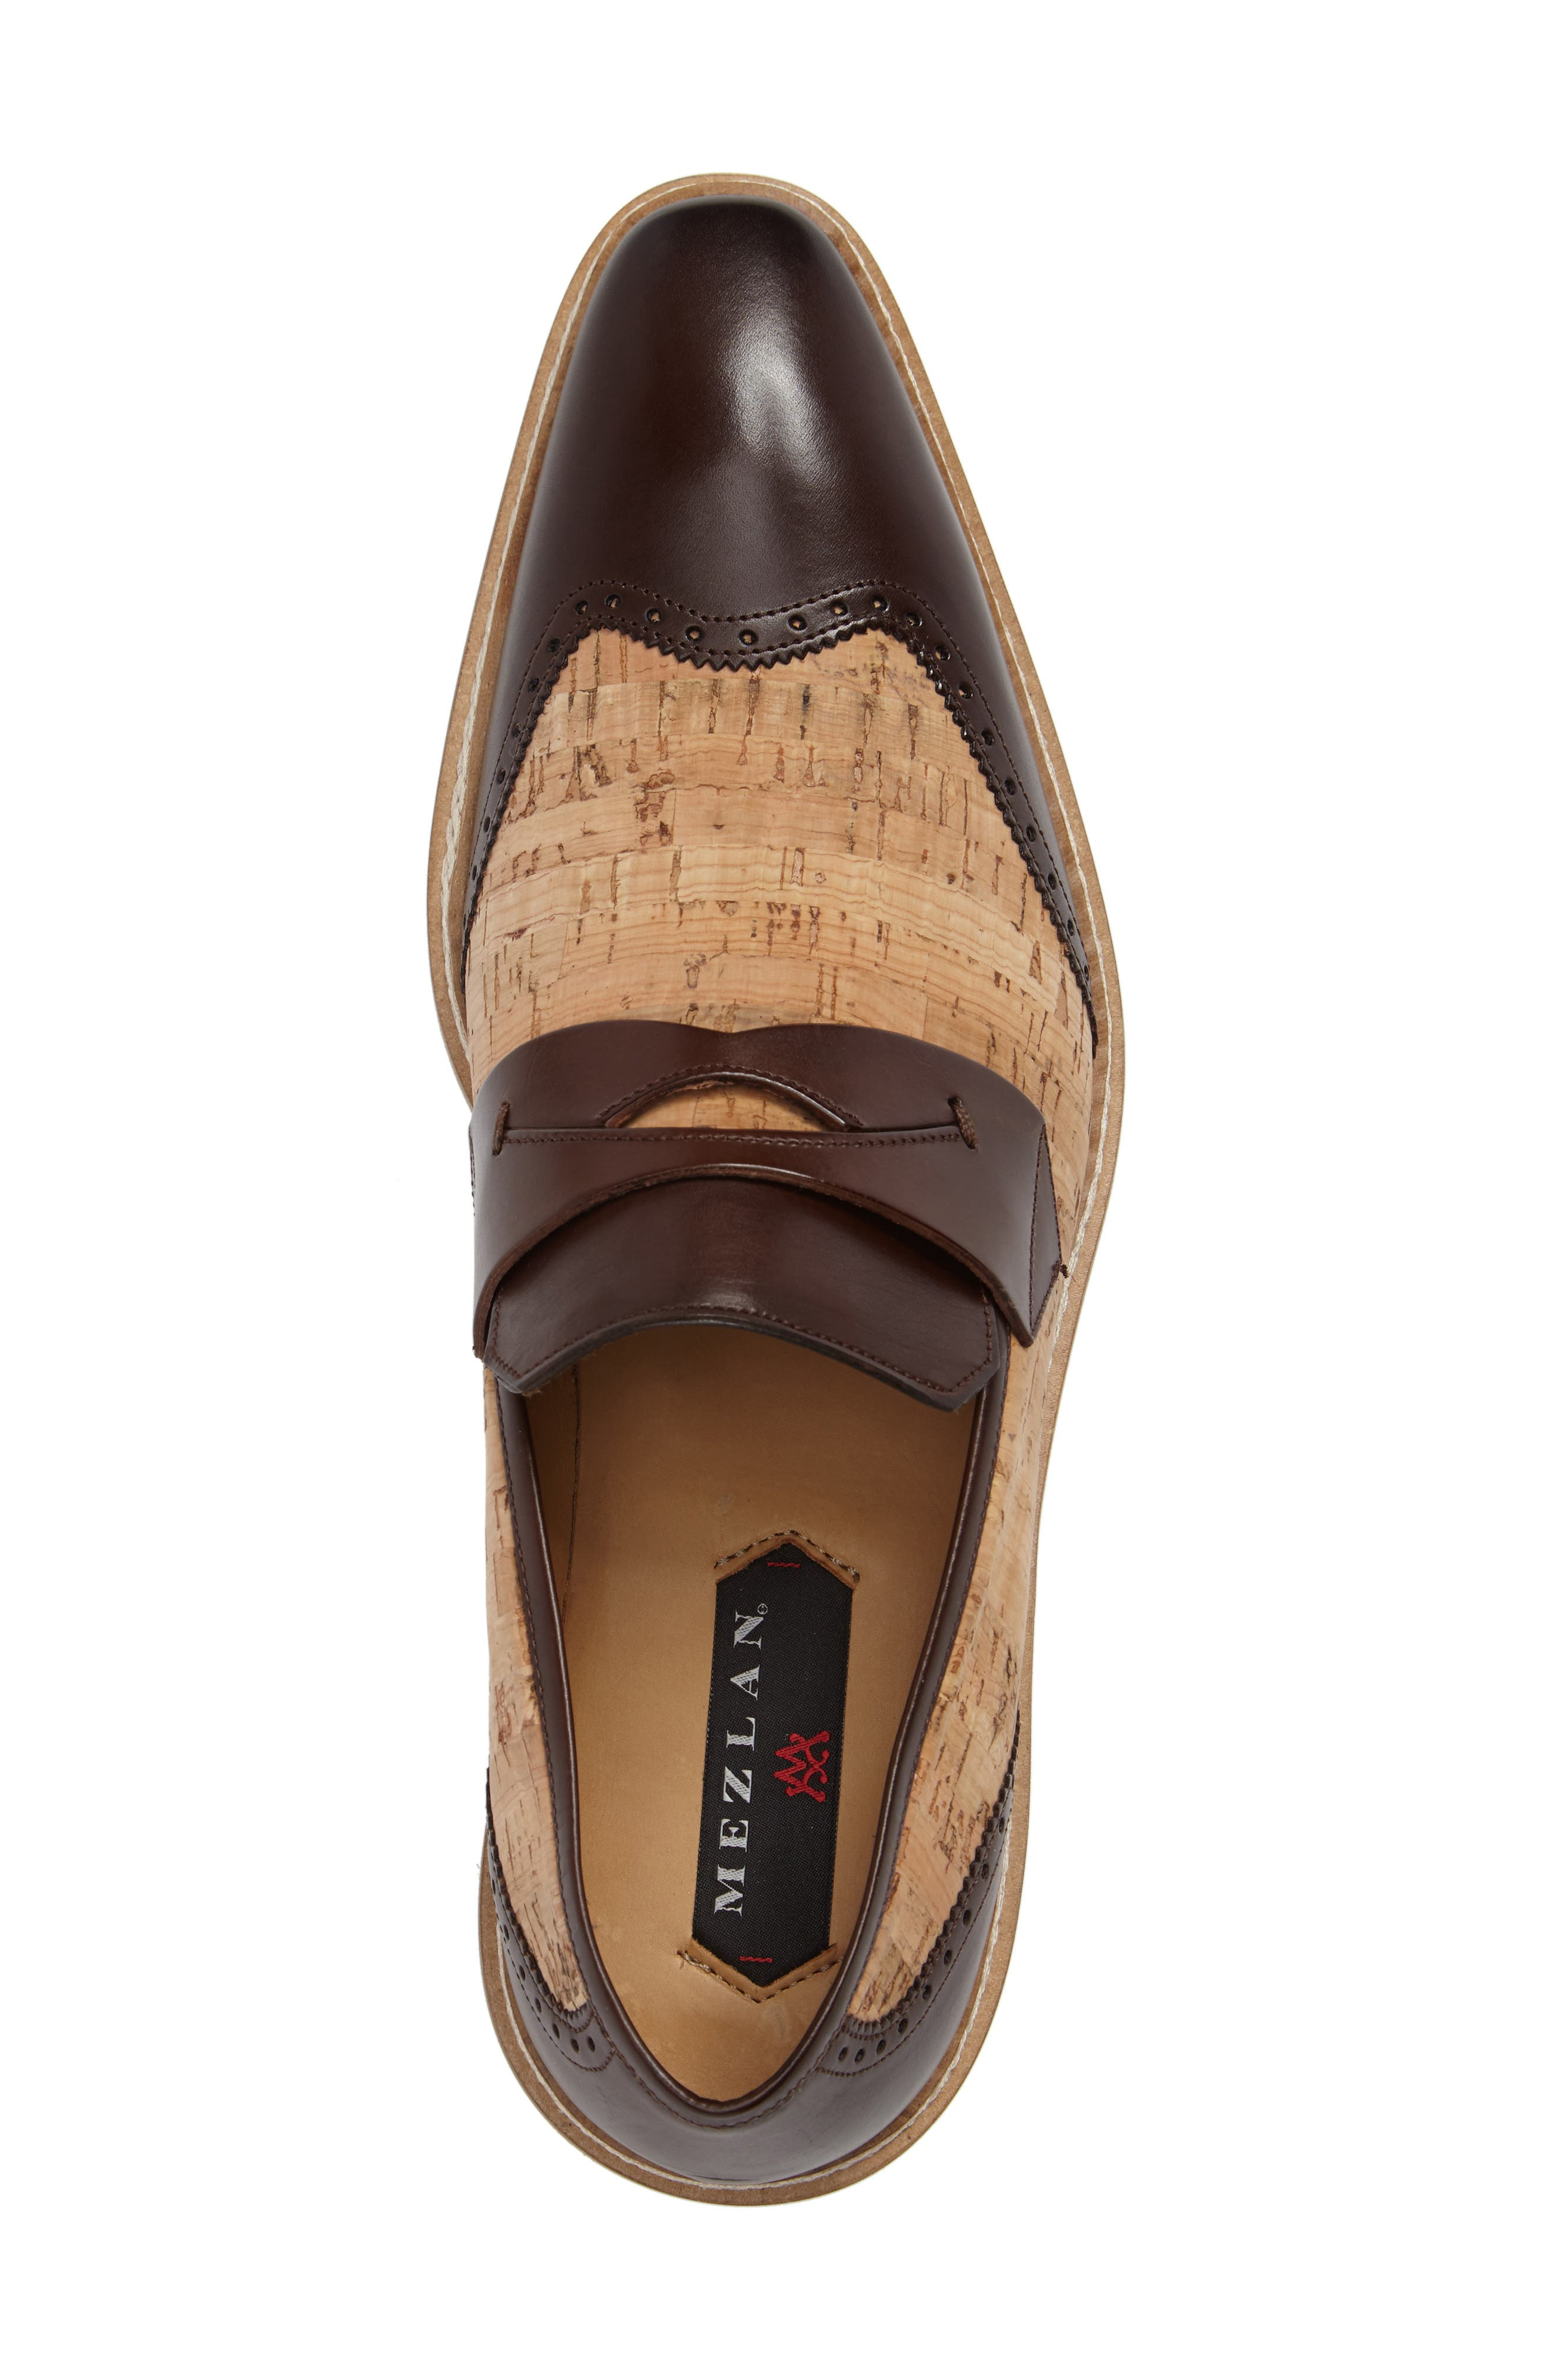 Redi Venetian Loafer,                             Alternate thumbnail 5, color,                             200